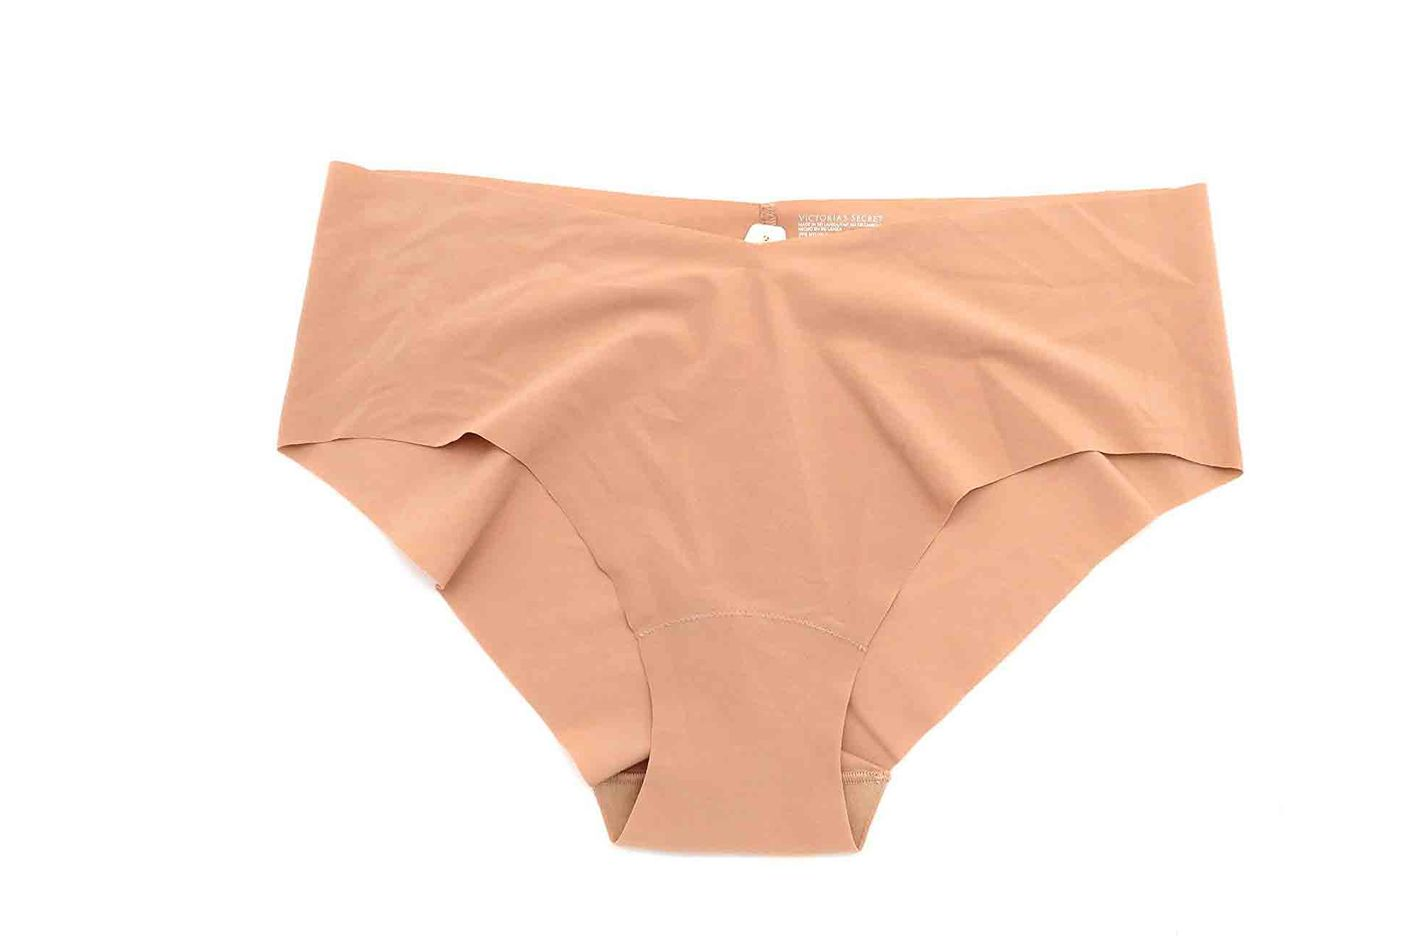 best women's underwear for each body type, style, and fabric